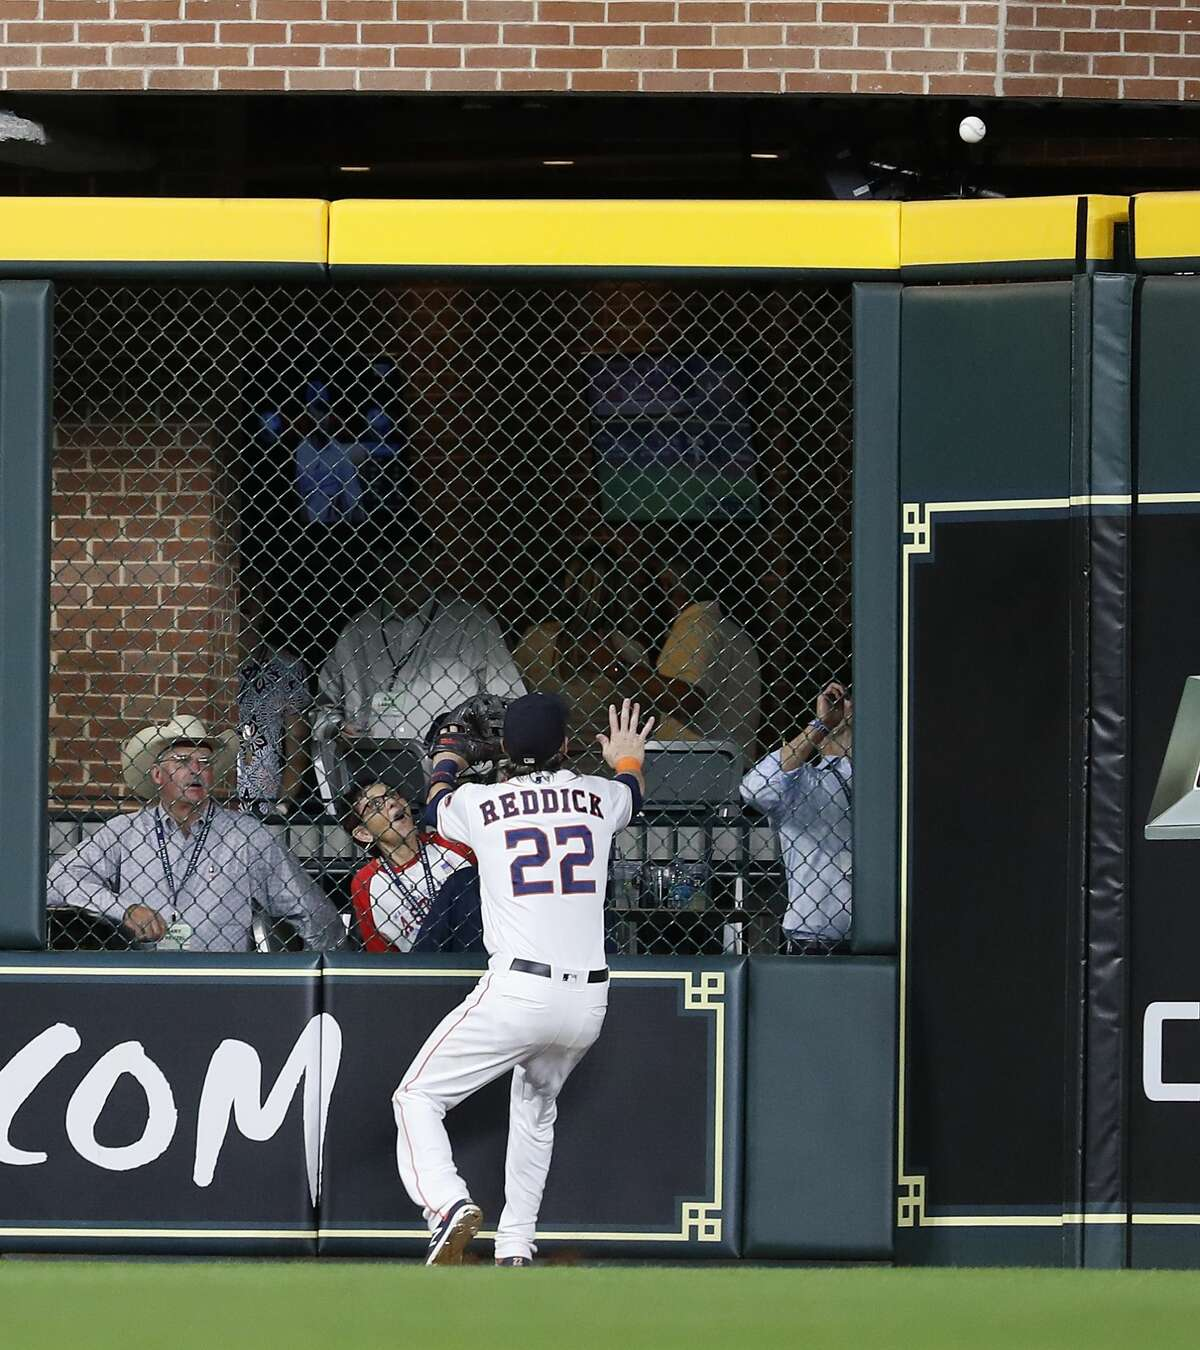 Houston Astros Josh Reddick (22) chases Oakland Athletics Nick Martini's RBI double, which was the go-ahead run during the ninth inning of an MLB baseball game at Minute Maid Park, Tuesday, August 28, 2018, in Houston.